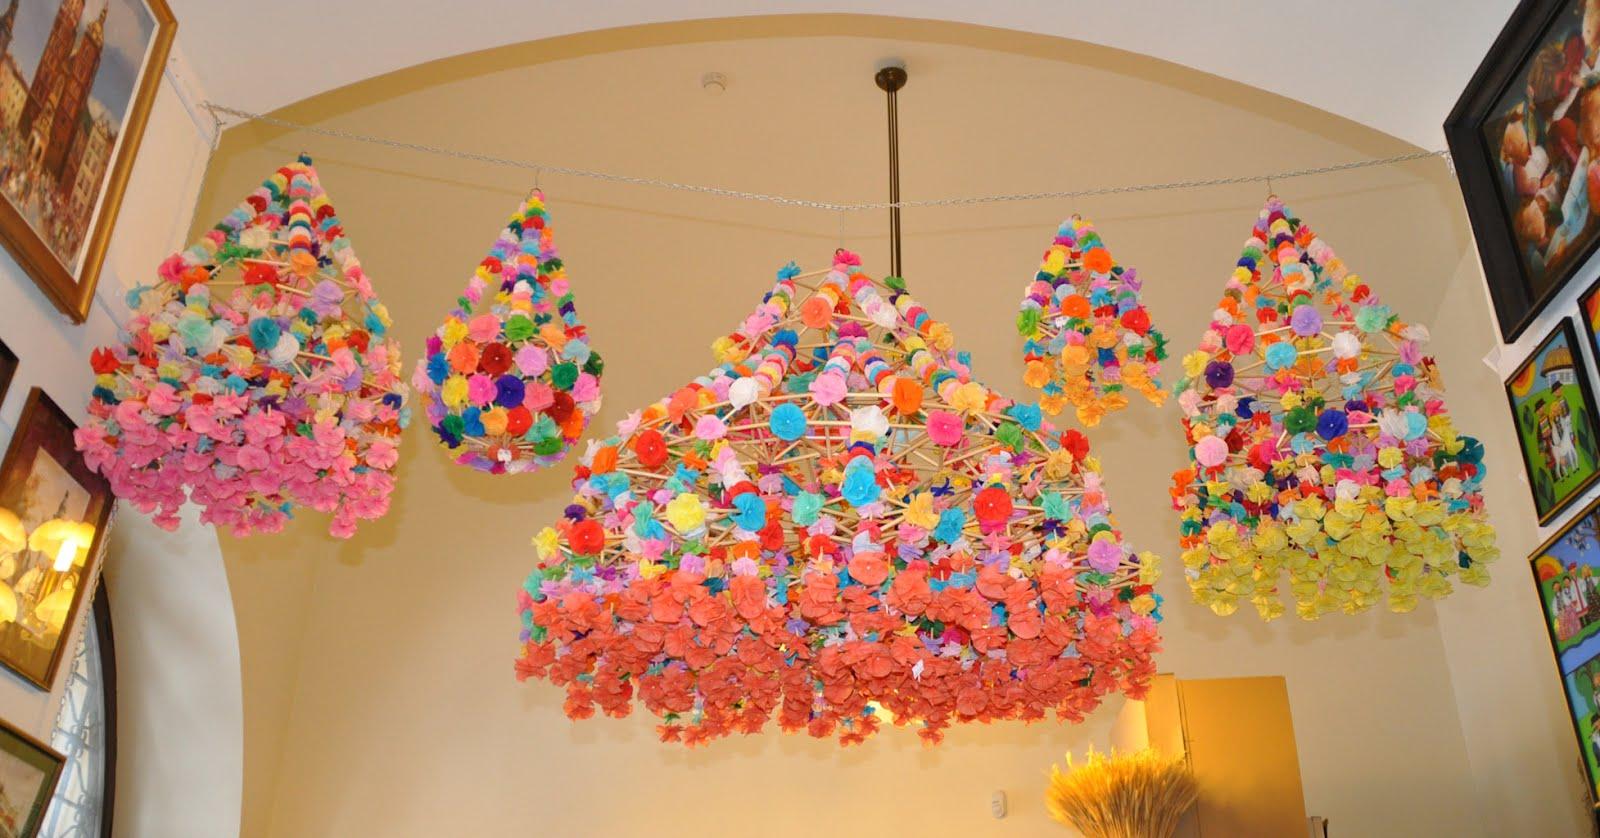 Been Working On Recently It S Based The Polish Paper Chandeliers Or Pajaki That I Saw In Krakow Back January Below Though Much Simplified